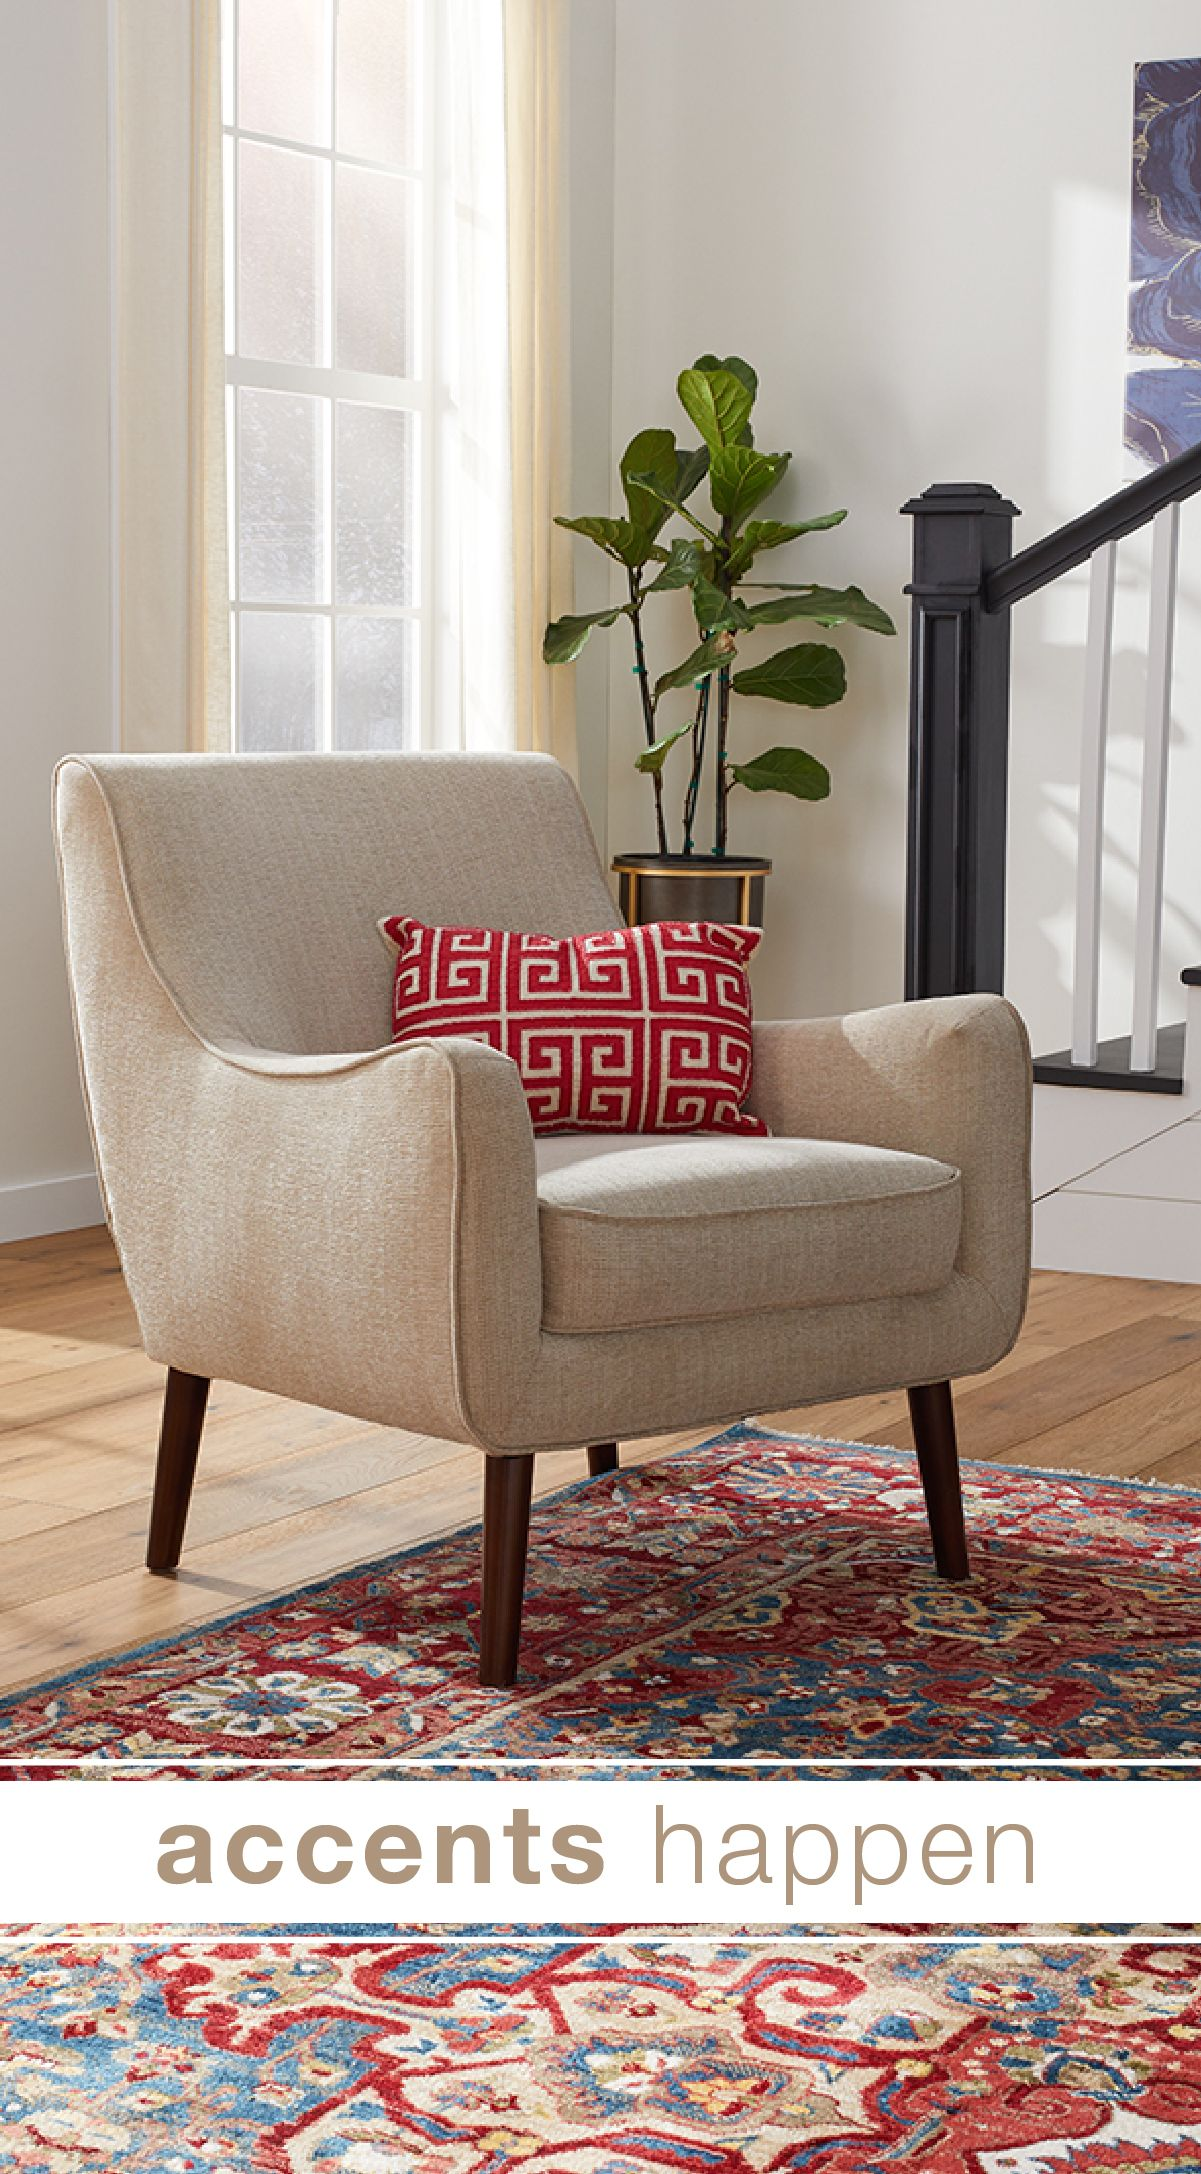 Get comfy in a beautiful new living room chair from Overstock